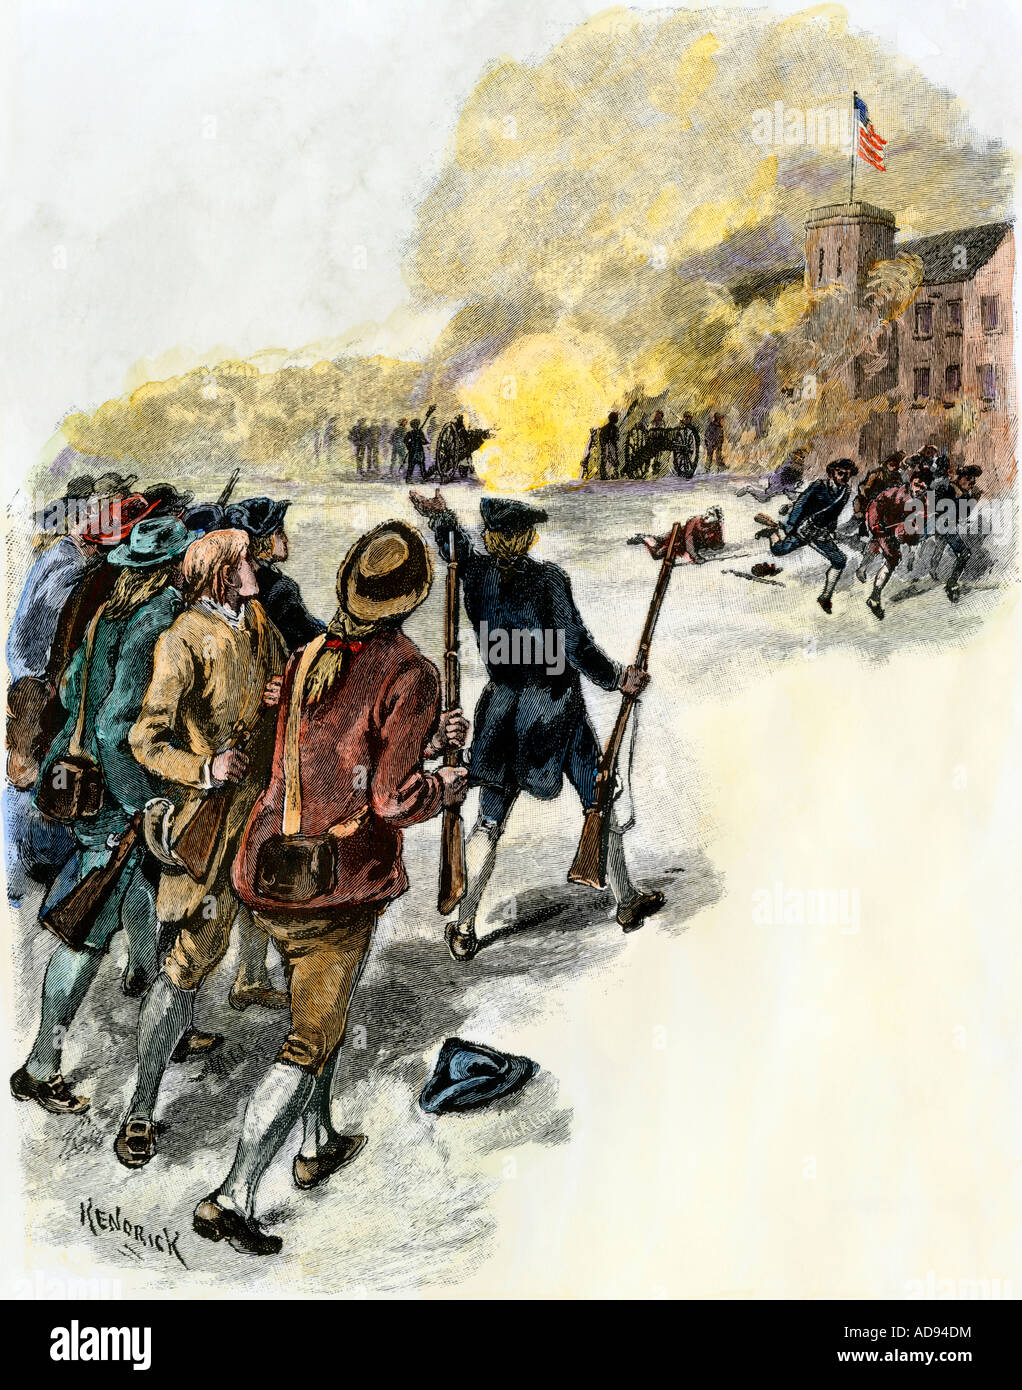 Massachusetts militia attacking angry rioters in Shays Revolt 1786 to 1787. Hand-colored woodcut - Stock Image